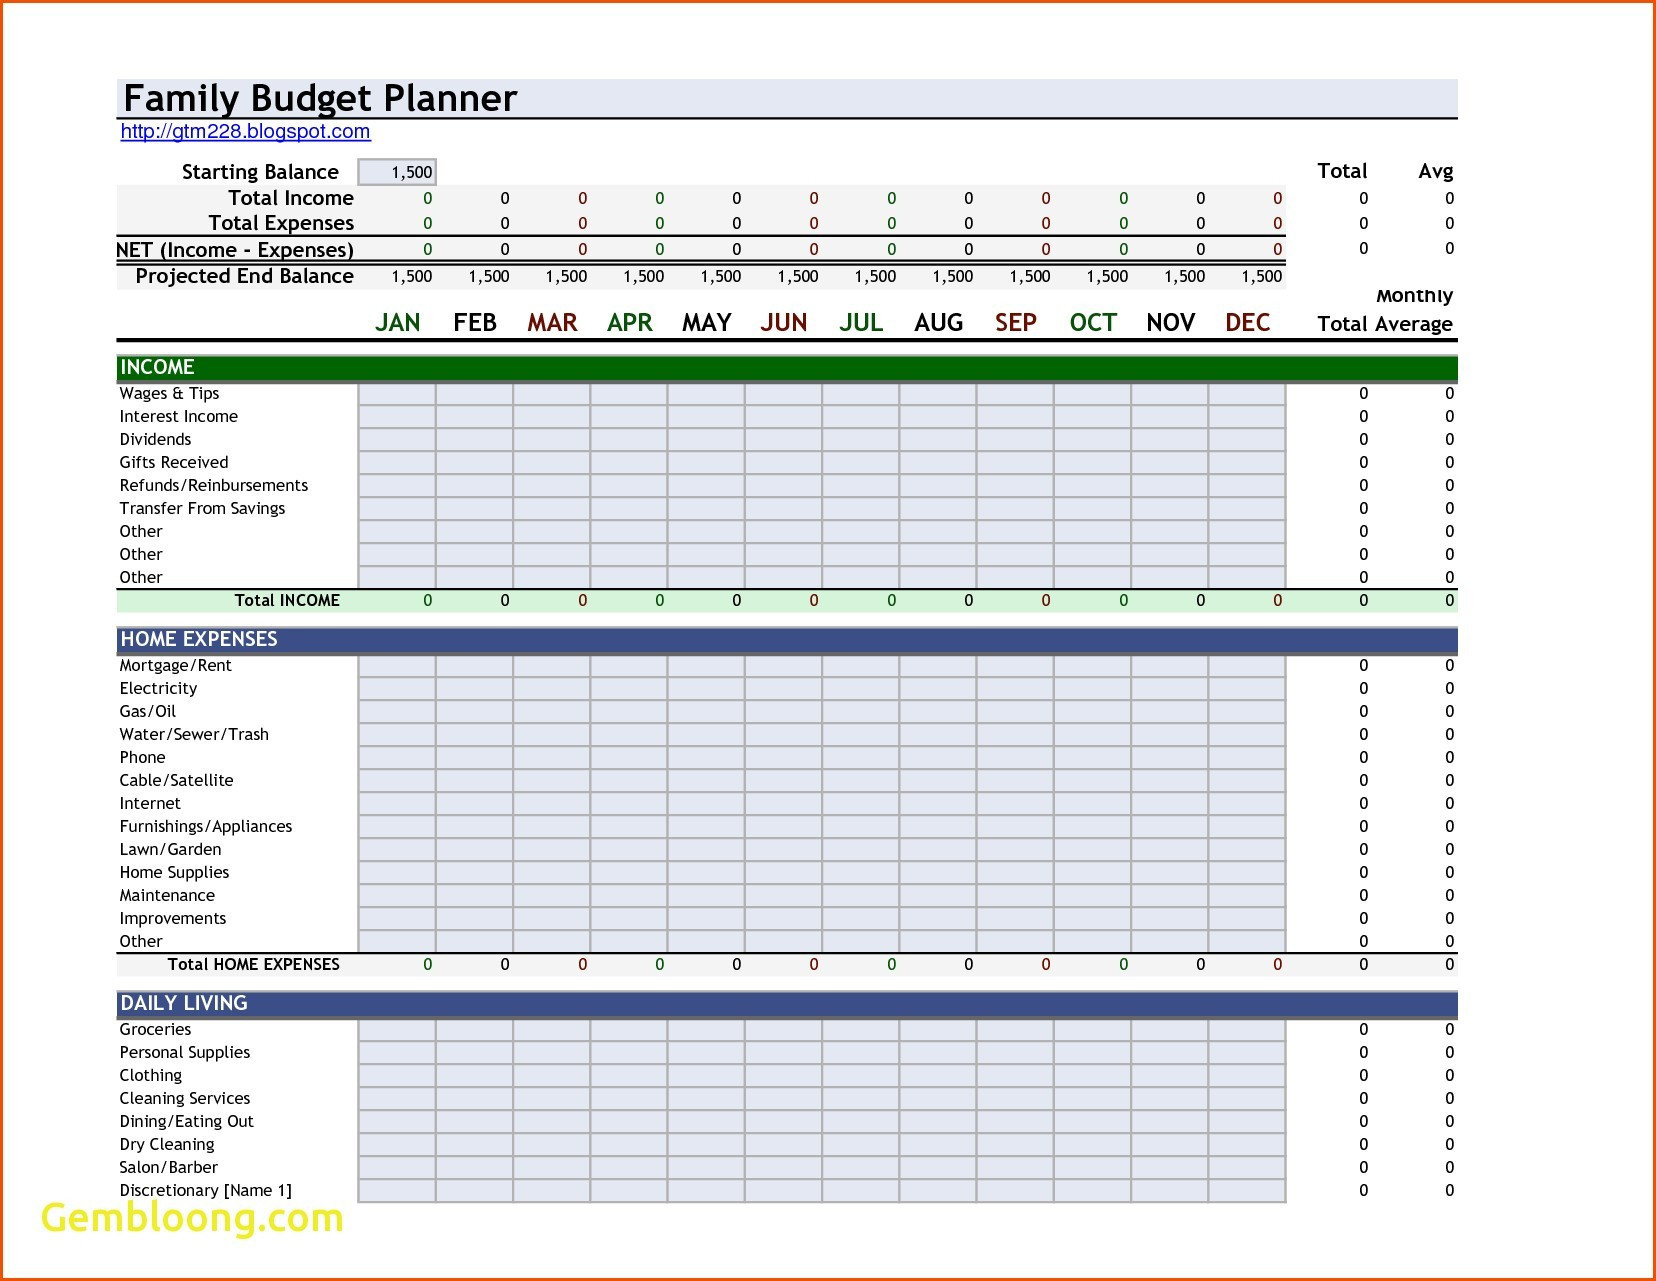 Home Contents Insurance Calculator Spreadsheet Pertaining To Household Budget Calculator Spreadsheet Then Book Bud Excel Template